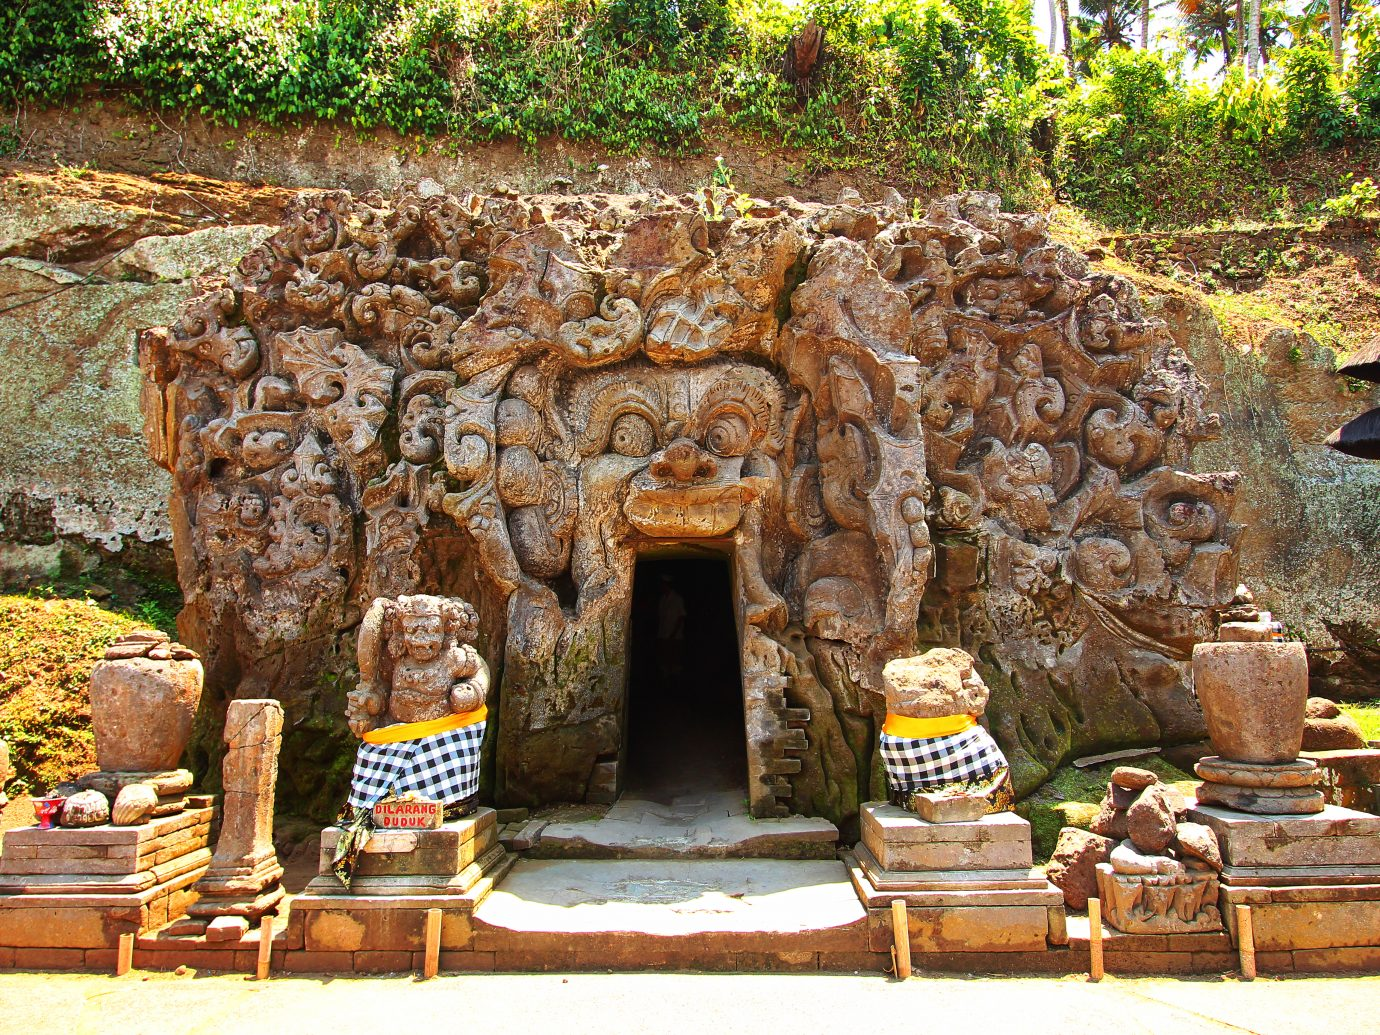 Elephant Cave temple and forest in Bali, Goa Gajah